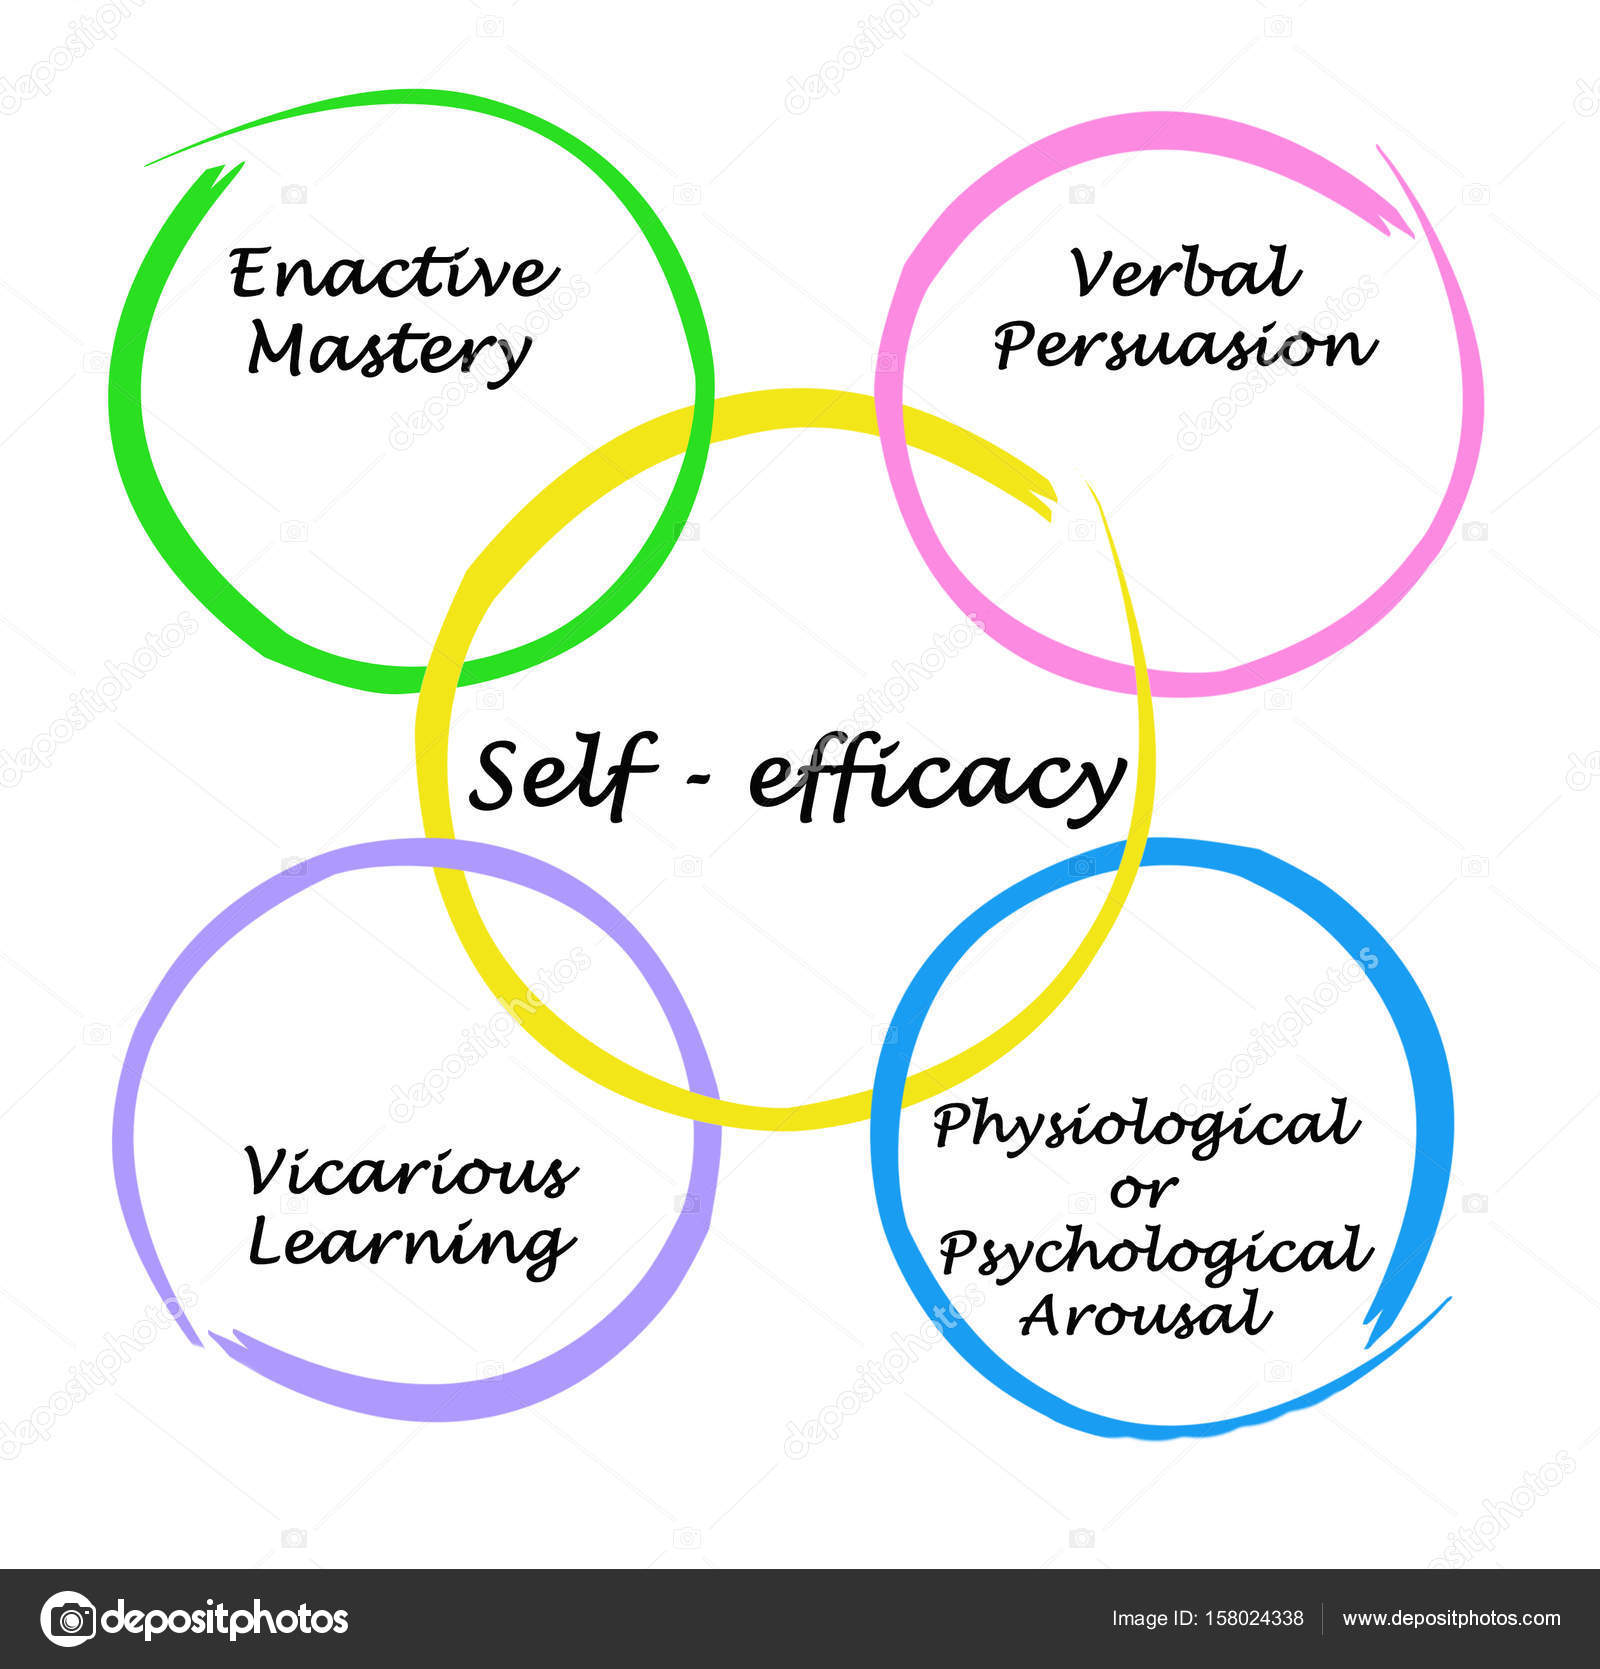 bandura social learning theory diagram wiring of a two bedroom house self efficacy miifotos